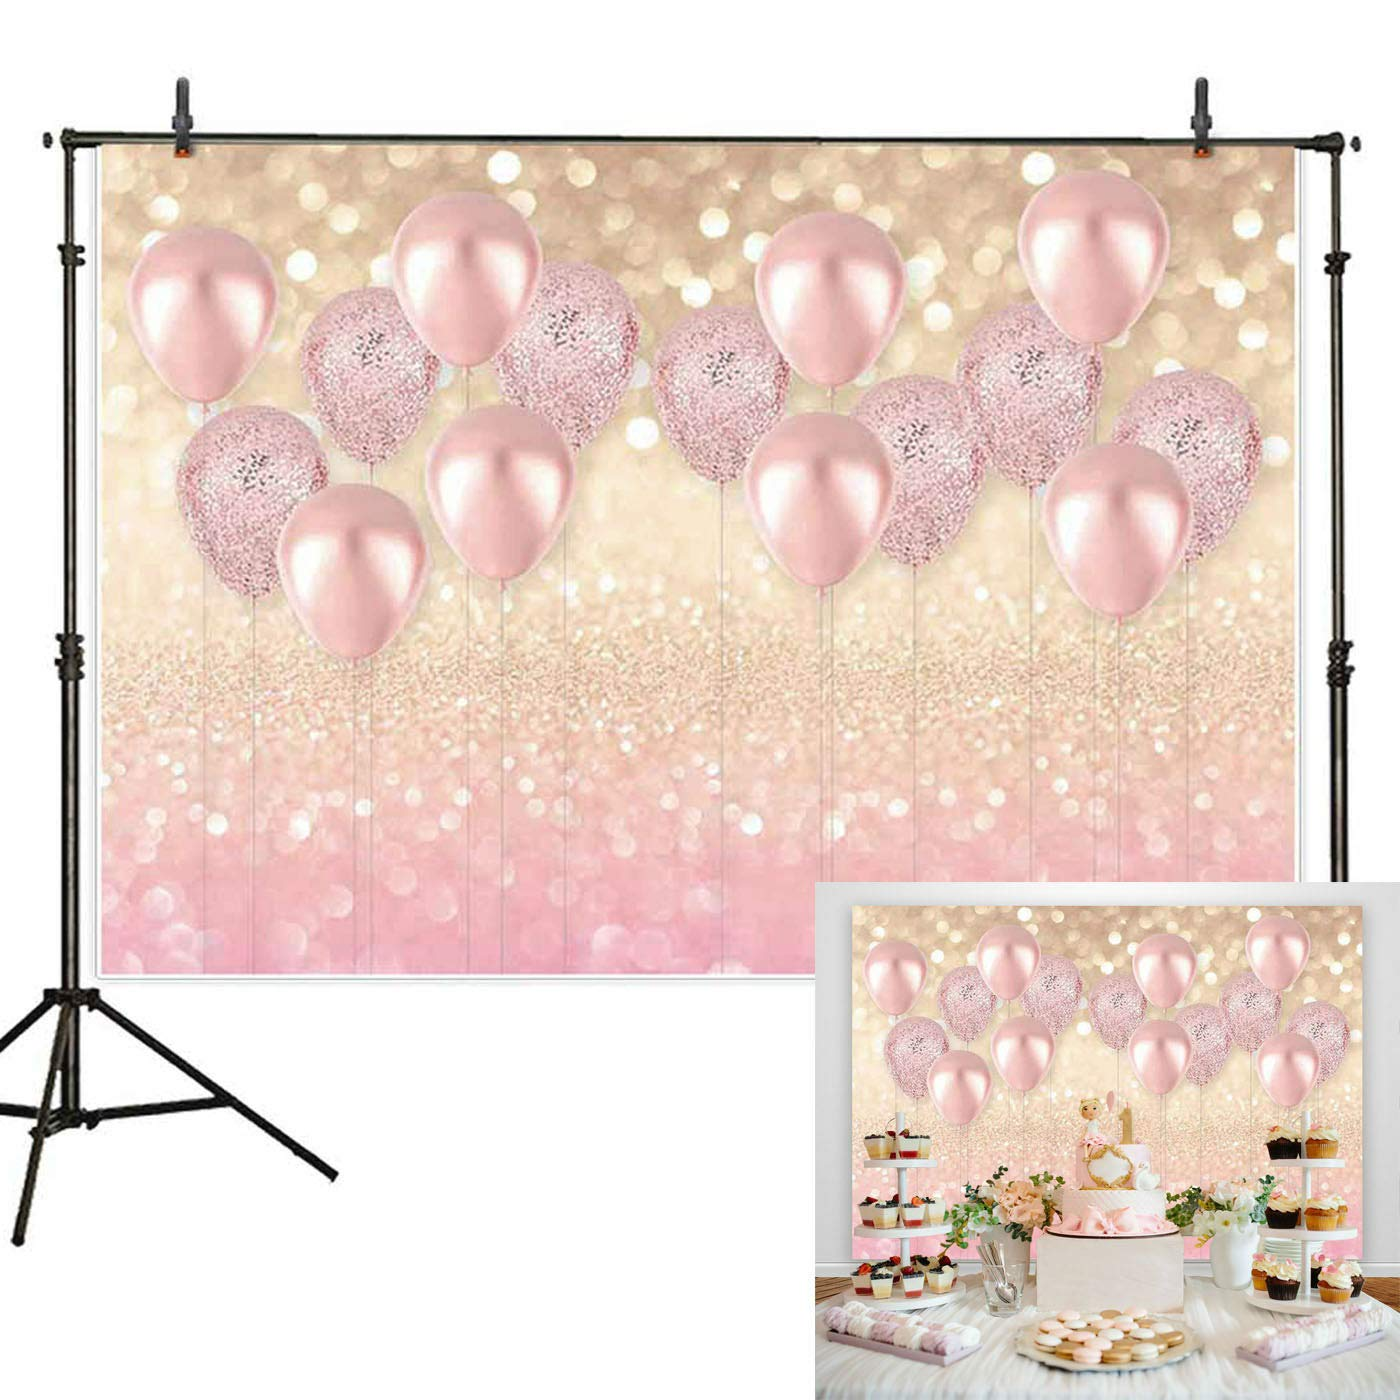 Haboke 7x5ft Durable/Soft Fabric Rose Gold Party Decorations Pink Balloon Gold Bokeh Photo Backdrop for Birthday Baby Bridal Shower Bachelorette Party Supplies Photography Background Studio Props